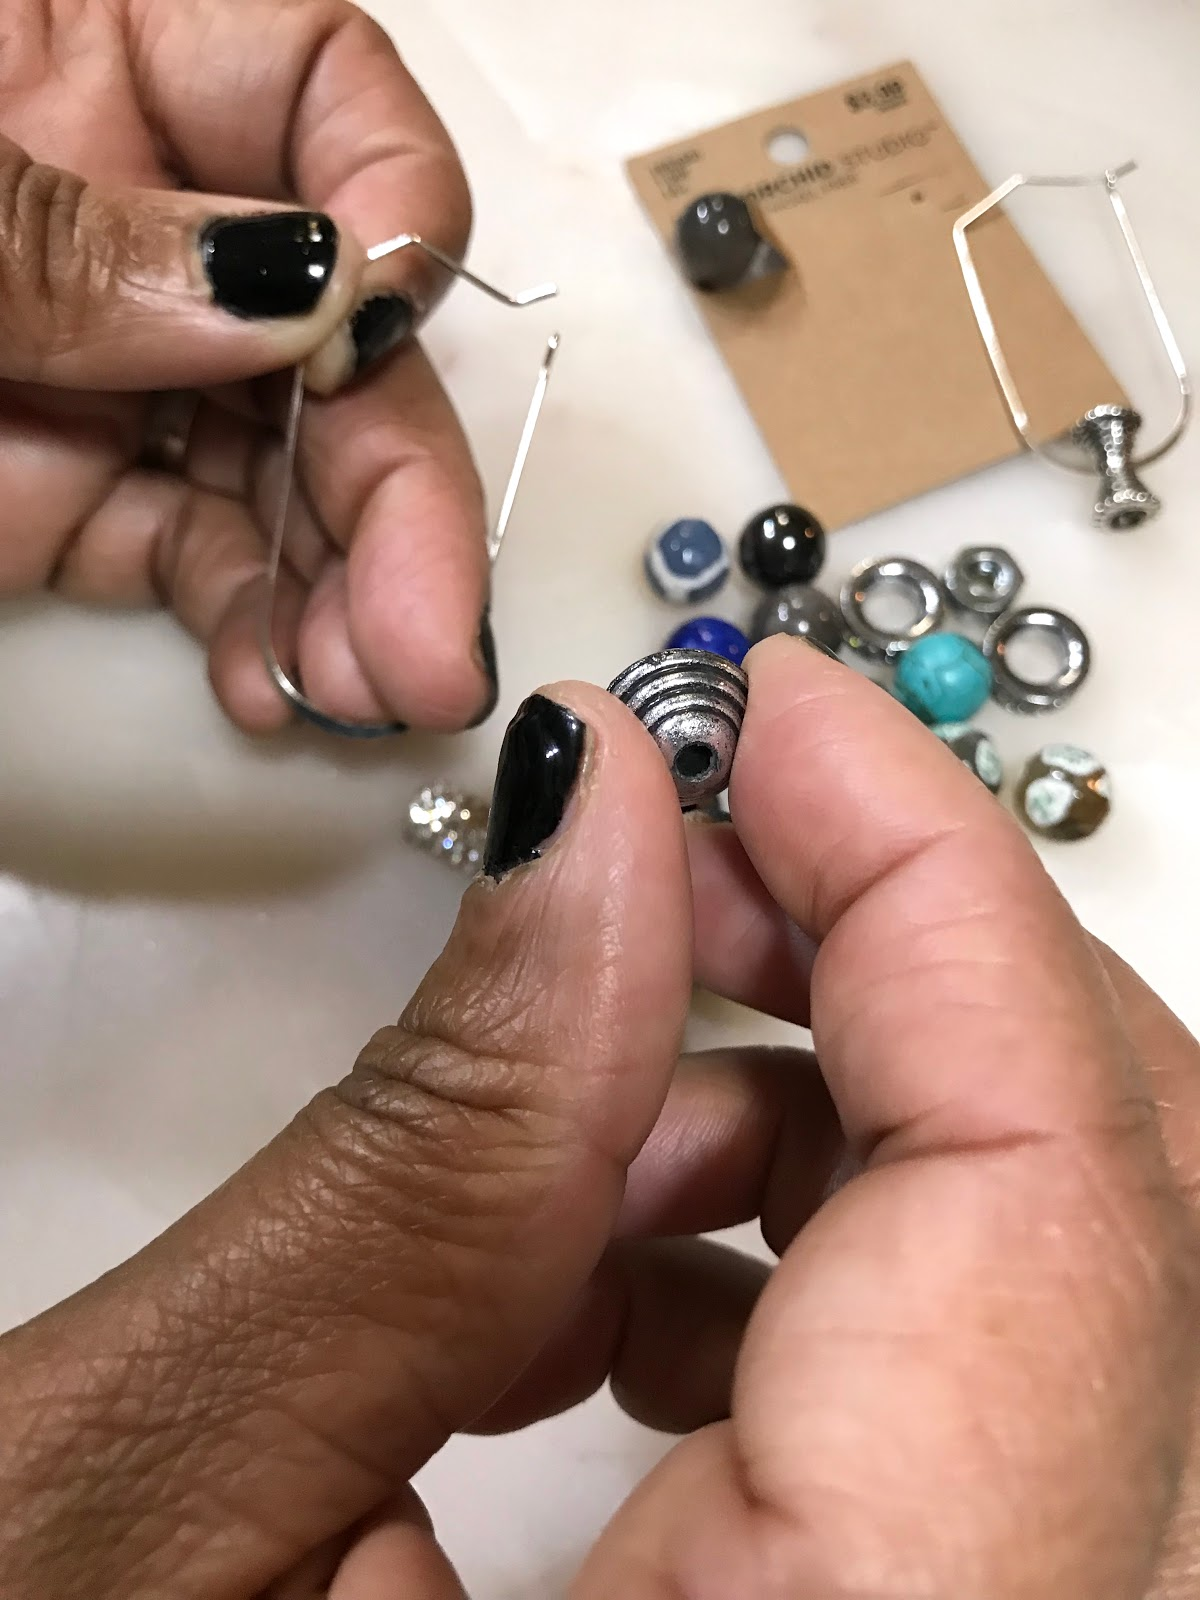 Imge: Diy Tips and hacks at home. Beads and charms being placed on earrings for a stylish look